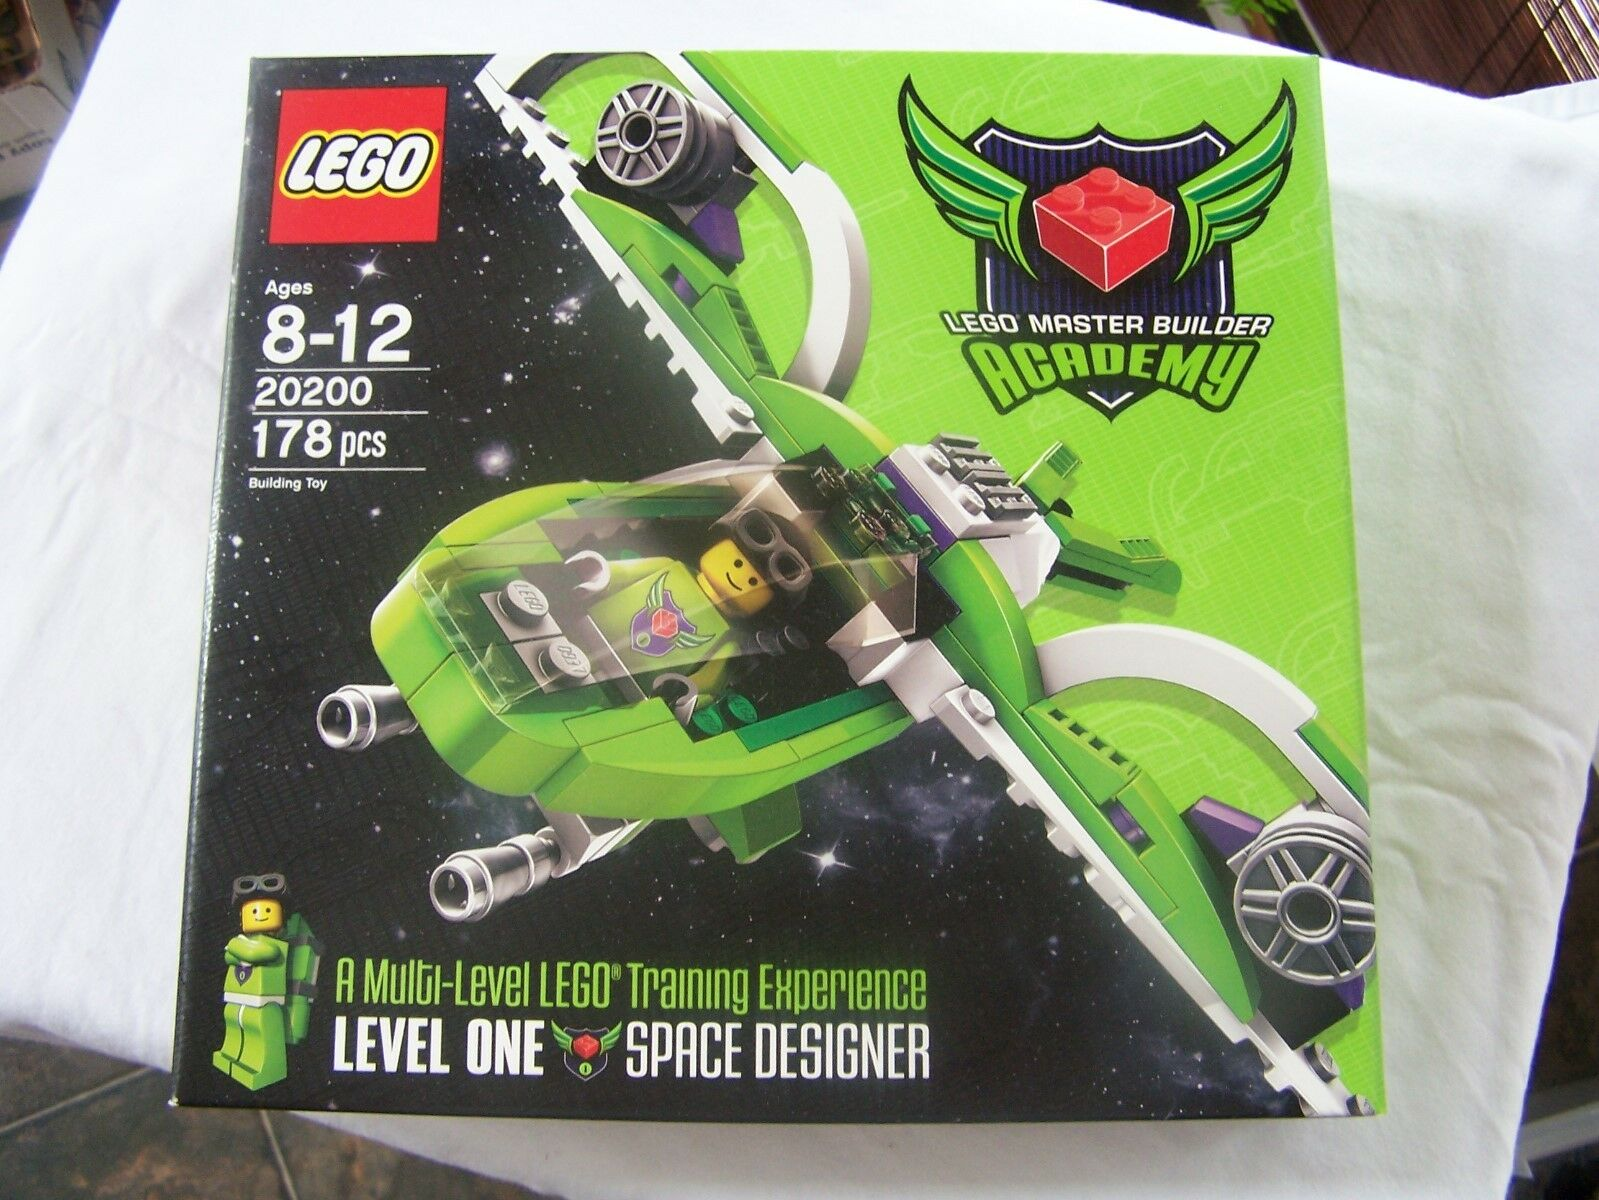 Lego 20200 MBA Level One - Kit 1, Space Designer MISB New Sealed